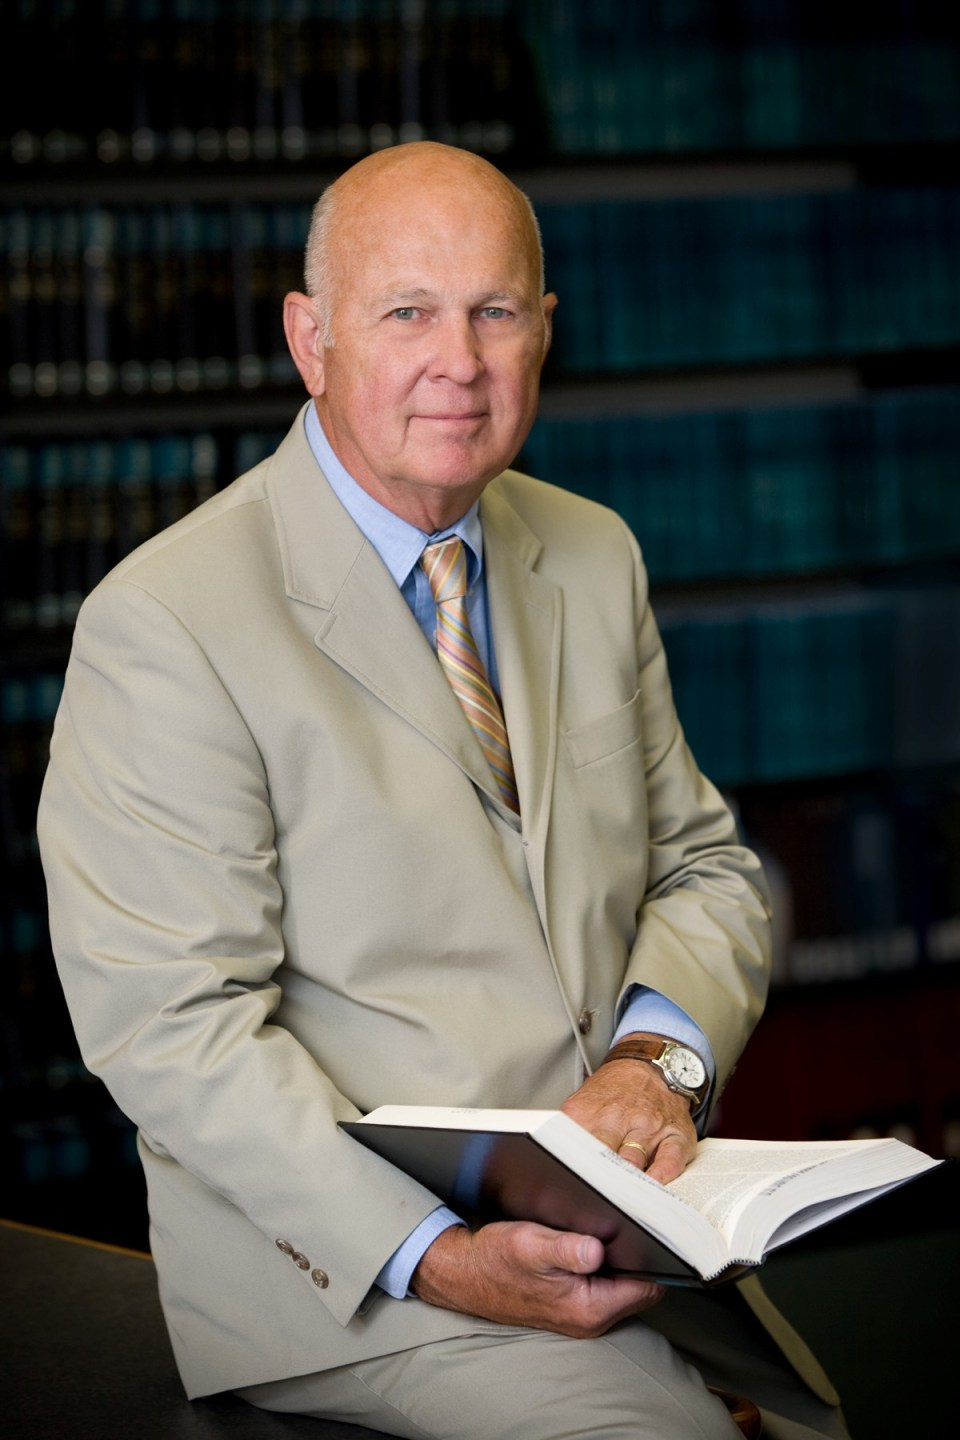 Magistrate Judge Donald Ashmanskas